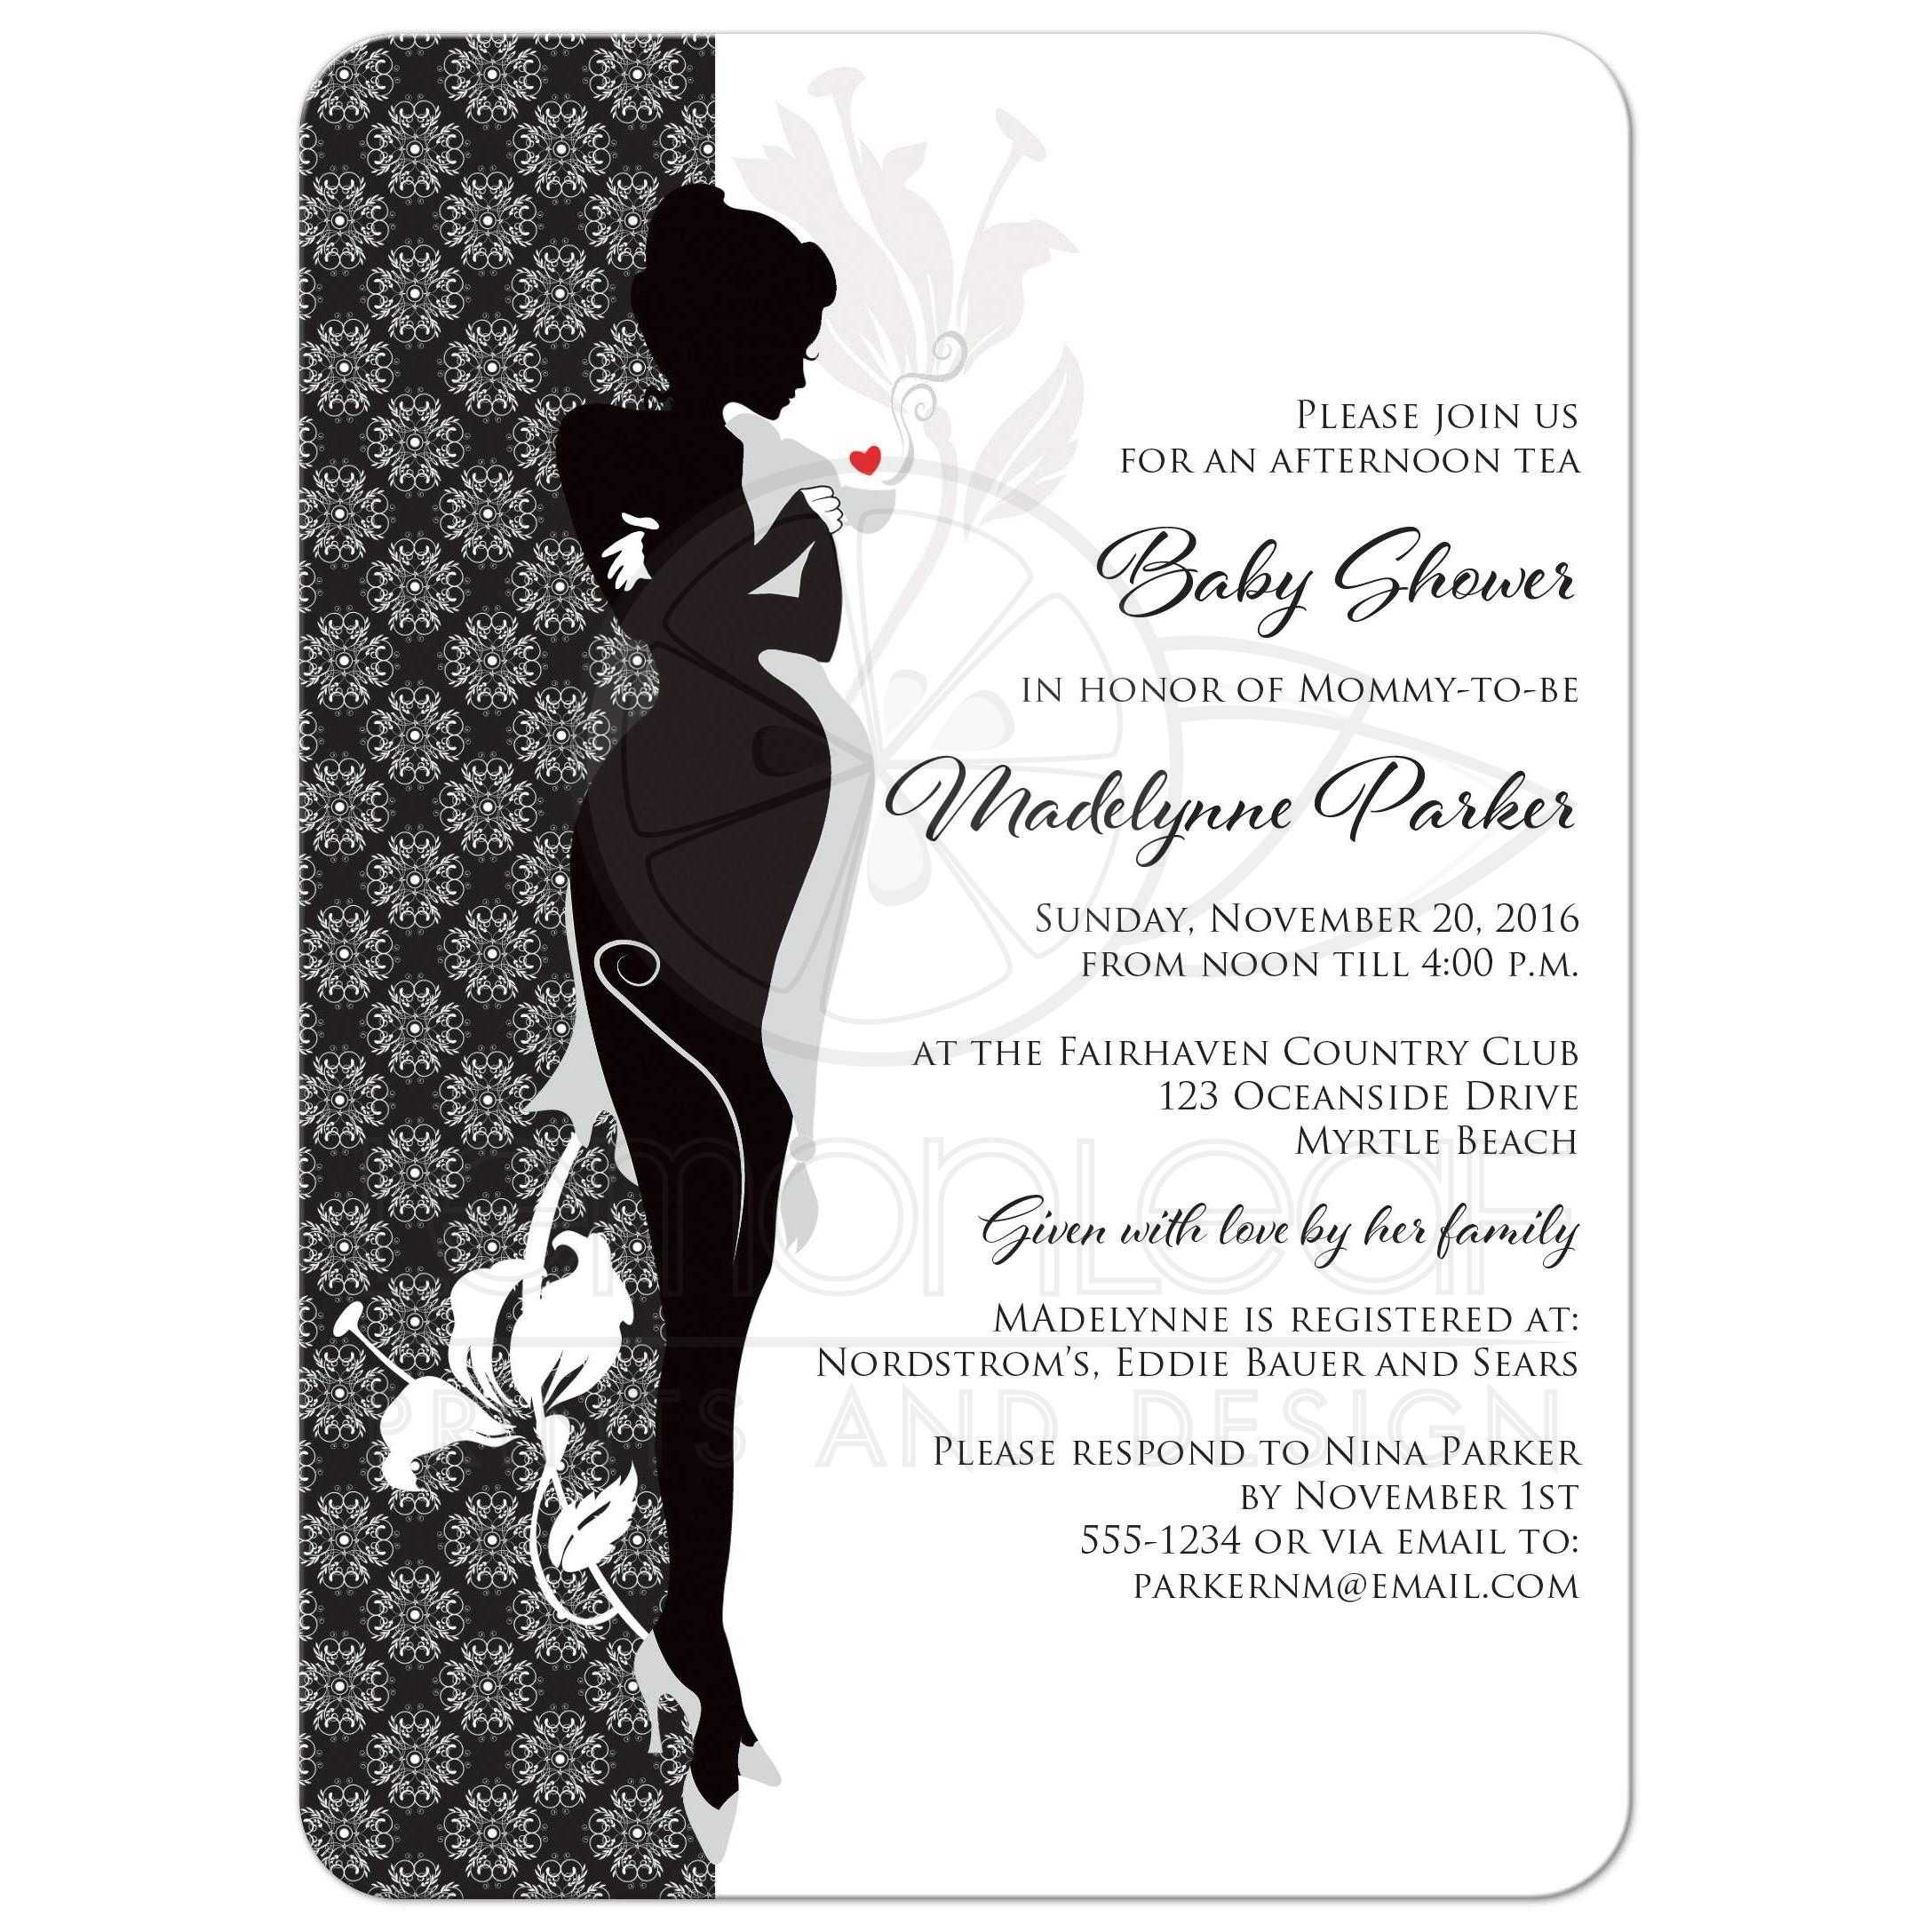 Baby Shower Tea Invitation | Black, Gray and White Sophisticated ...